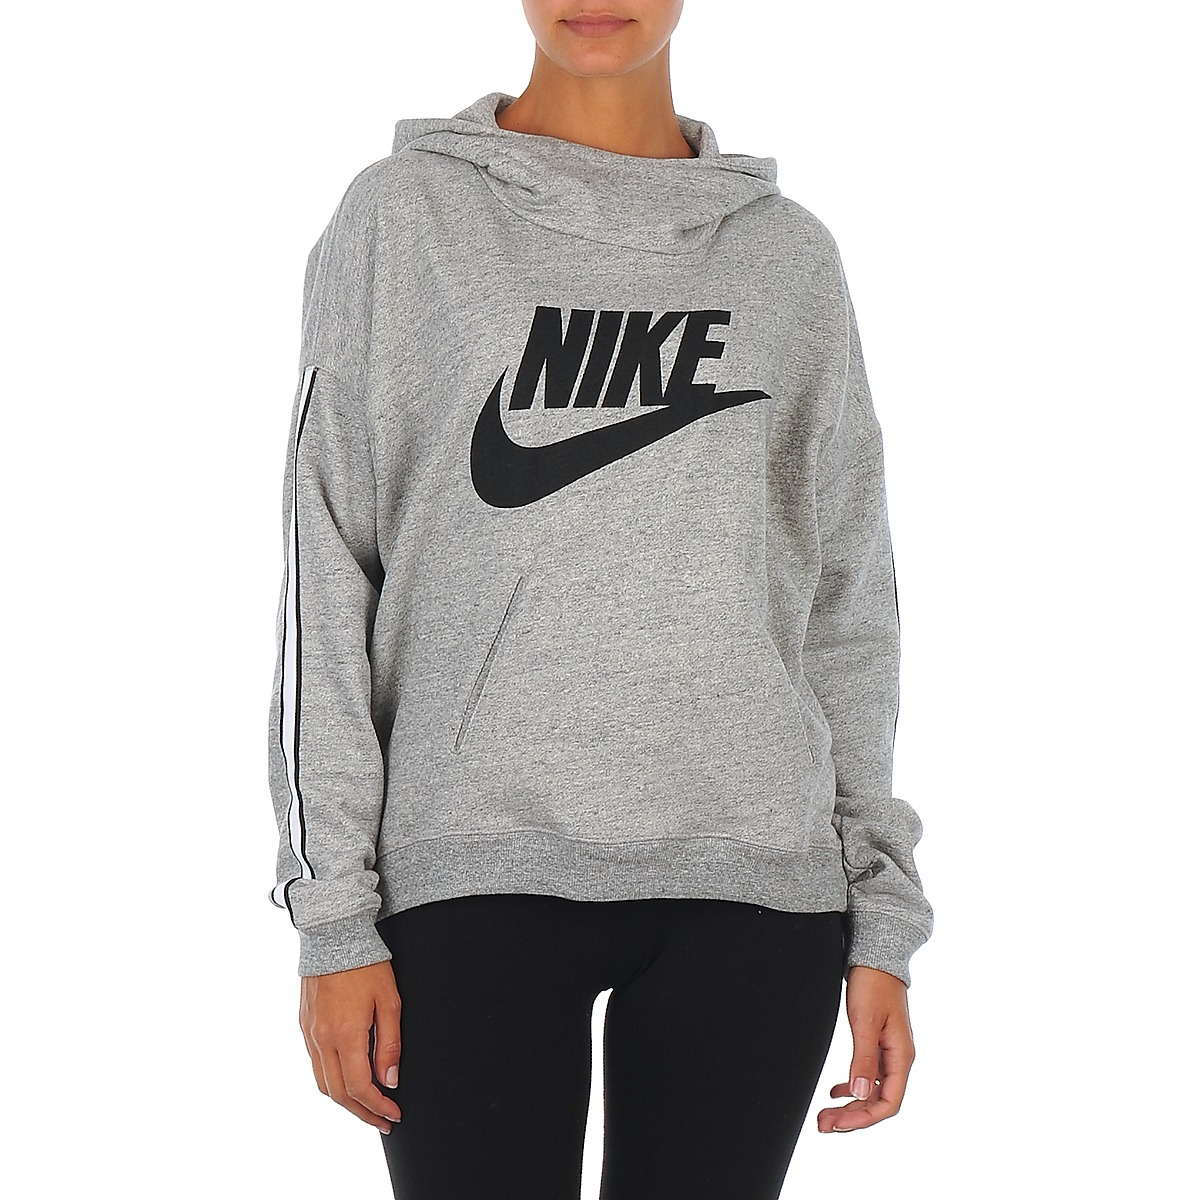 Sweatshirts Nike NIKE DISTRICT 72 HOODY Grå / Sort - Gratis levering med Spartoo.dk ! - textil Dame 380,25 Kr